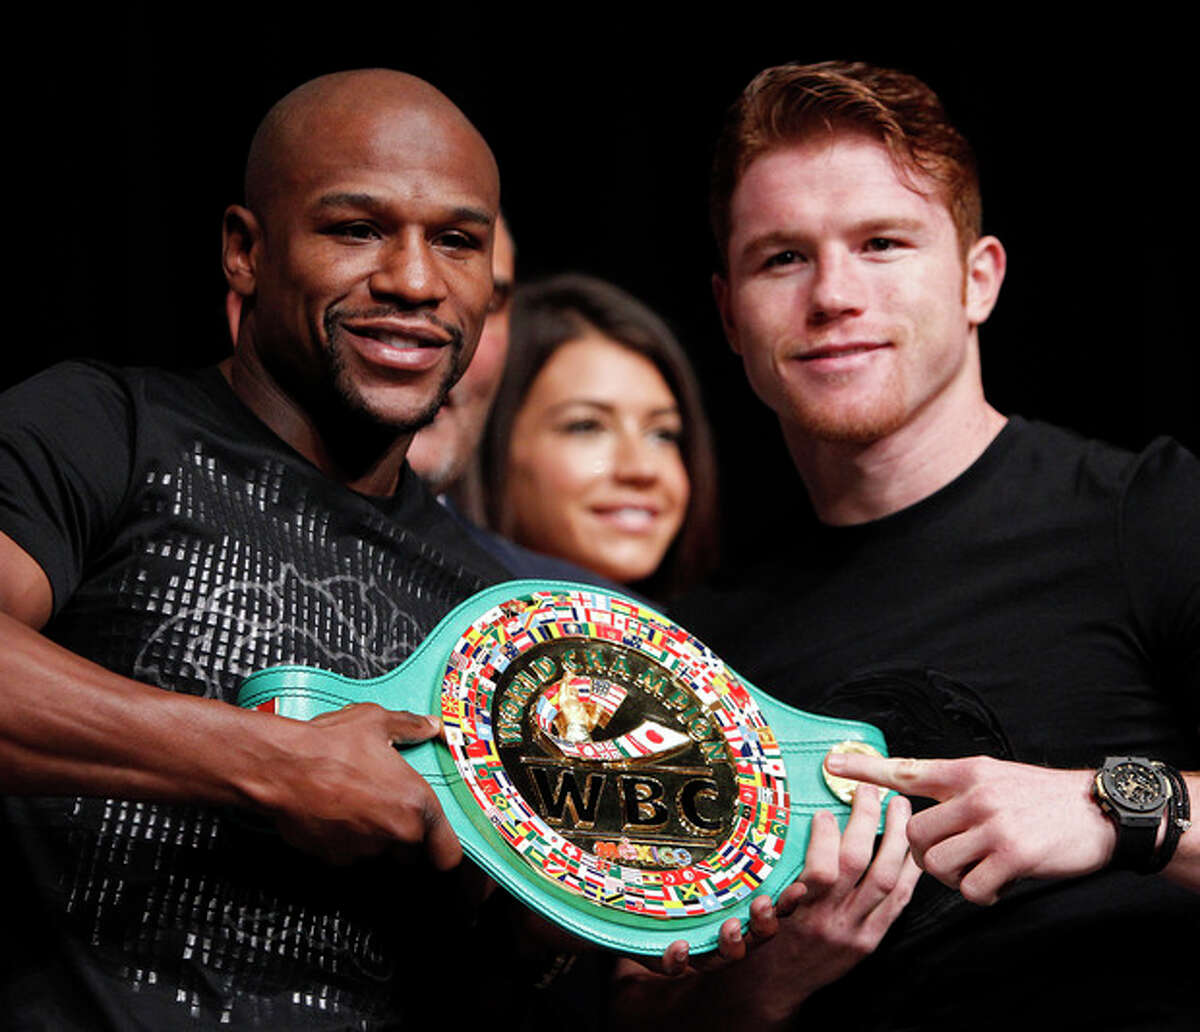 Boxers Floyd Mayweather, left, and Canelo Alvarez pose during a press conference in Las Vegas, Wednesday, Sept. 11, 2013. The pair are scheduled to fight on Saturday for Mayweather's WBA Super World and Alvarez's WBC junior middleweight titles. (AP Photo/Las Vegas Review-Journal, John Locher) LOCAL TV OUT; LOCAL INTERNET OUT; LAS VEGAS SUN OUT